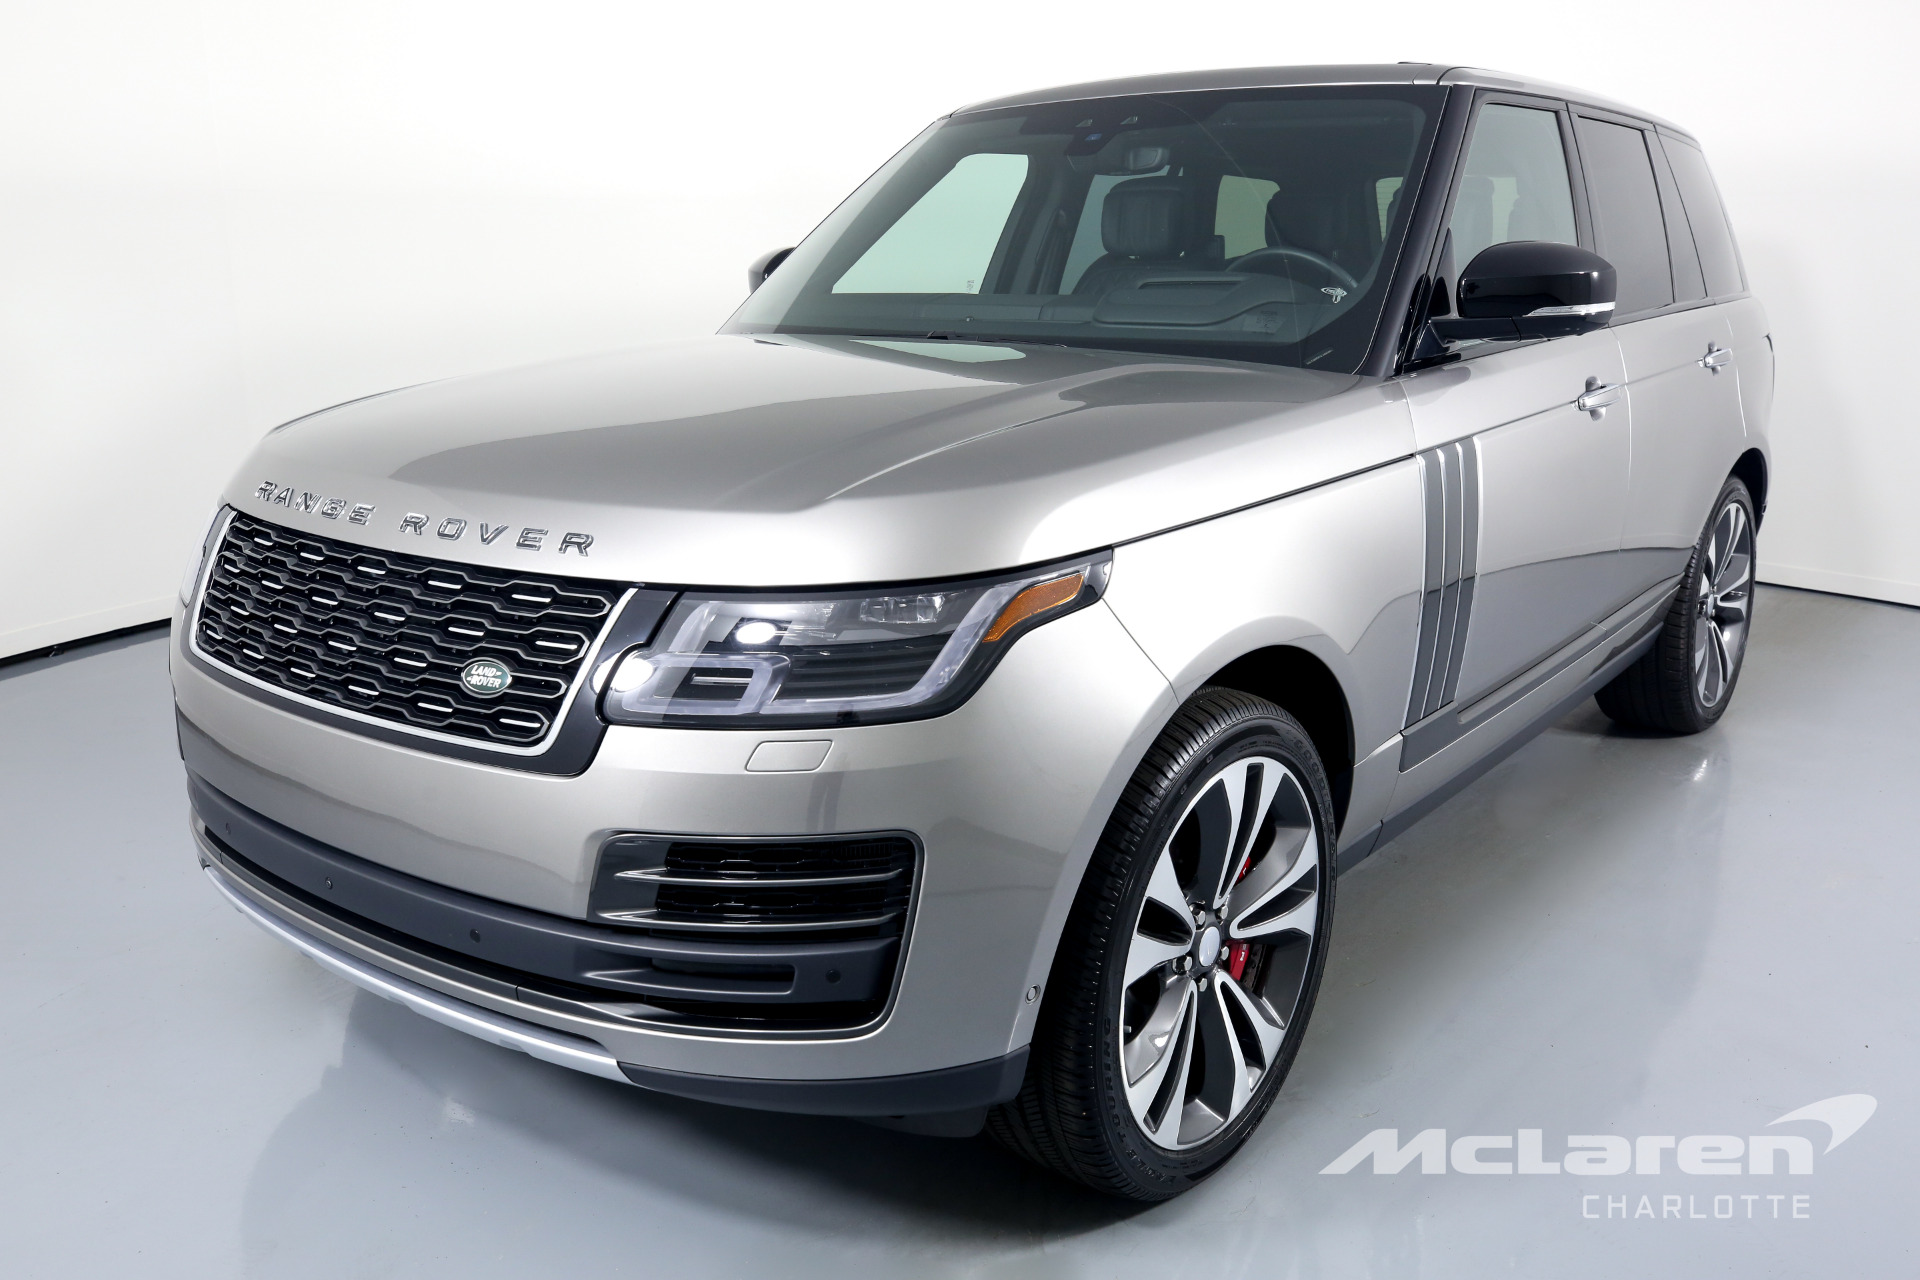 Used 2020 Land Rover Range Rover SVAutobiography Dynamic | Charlotte, NC